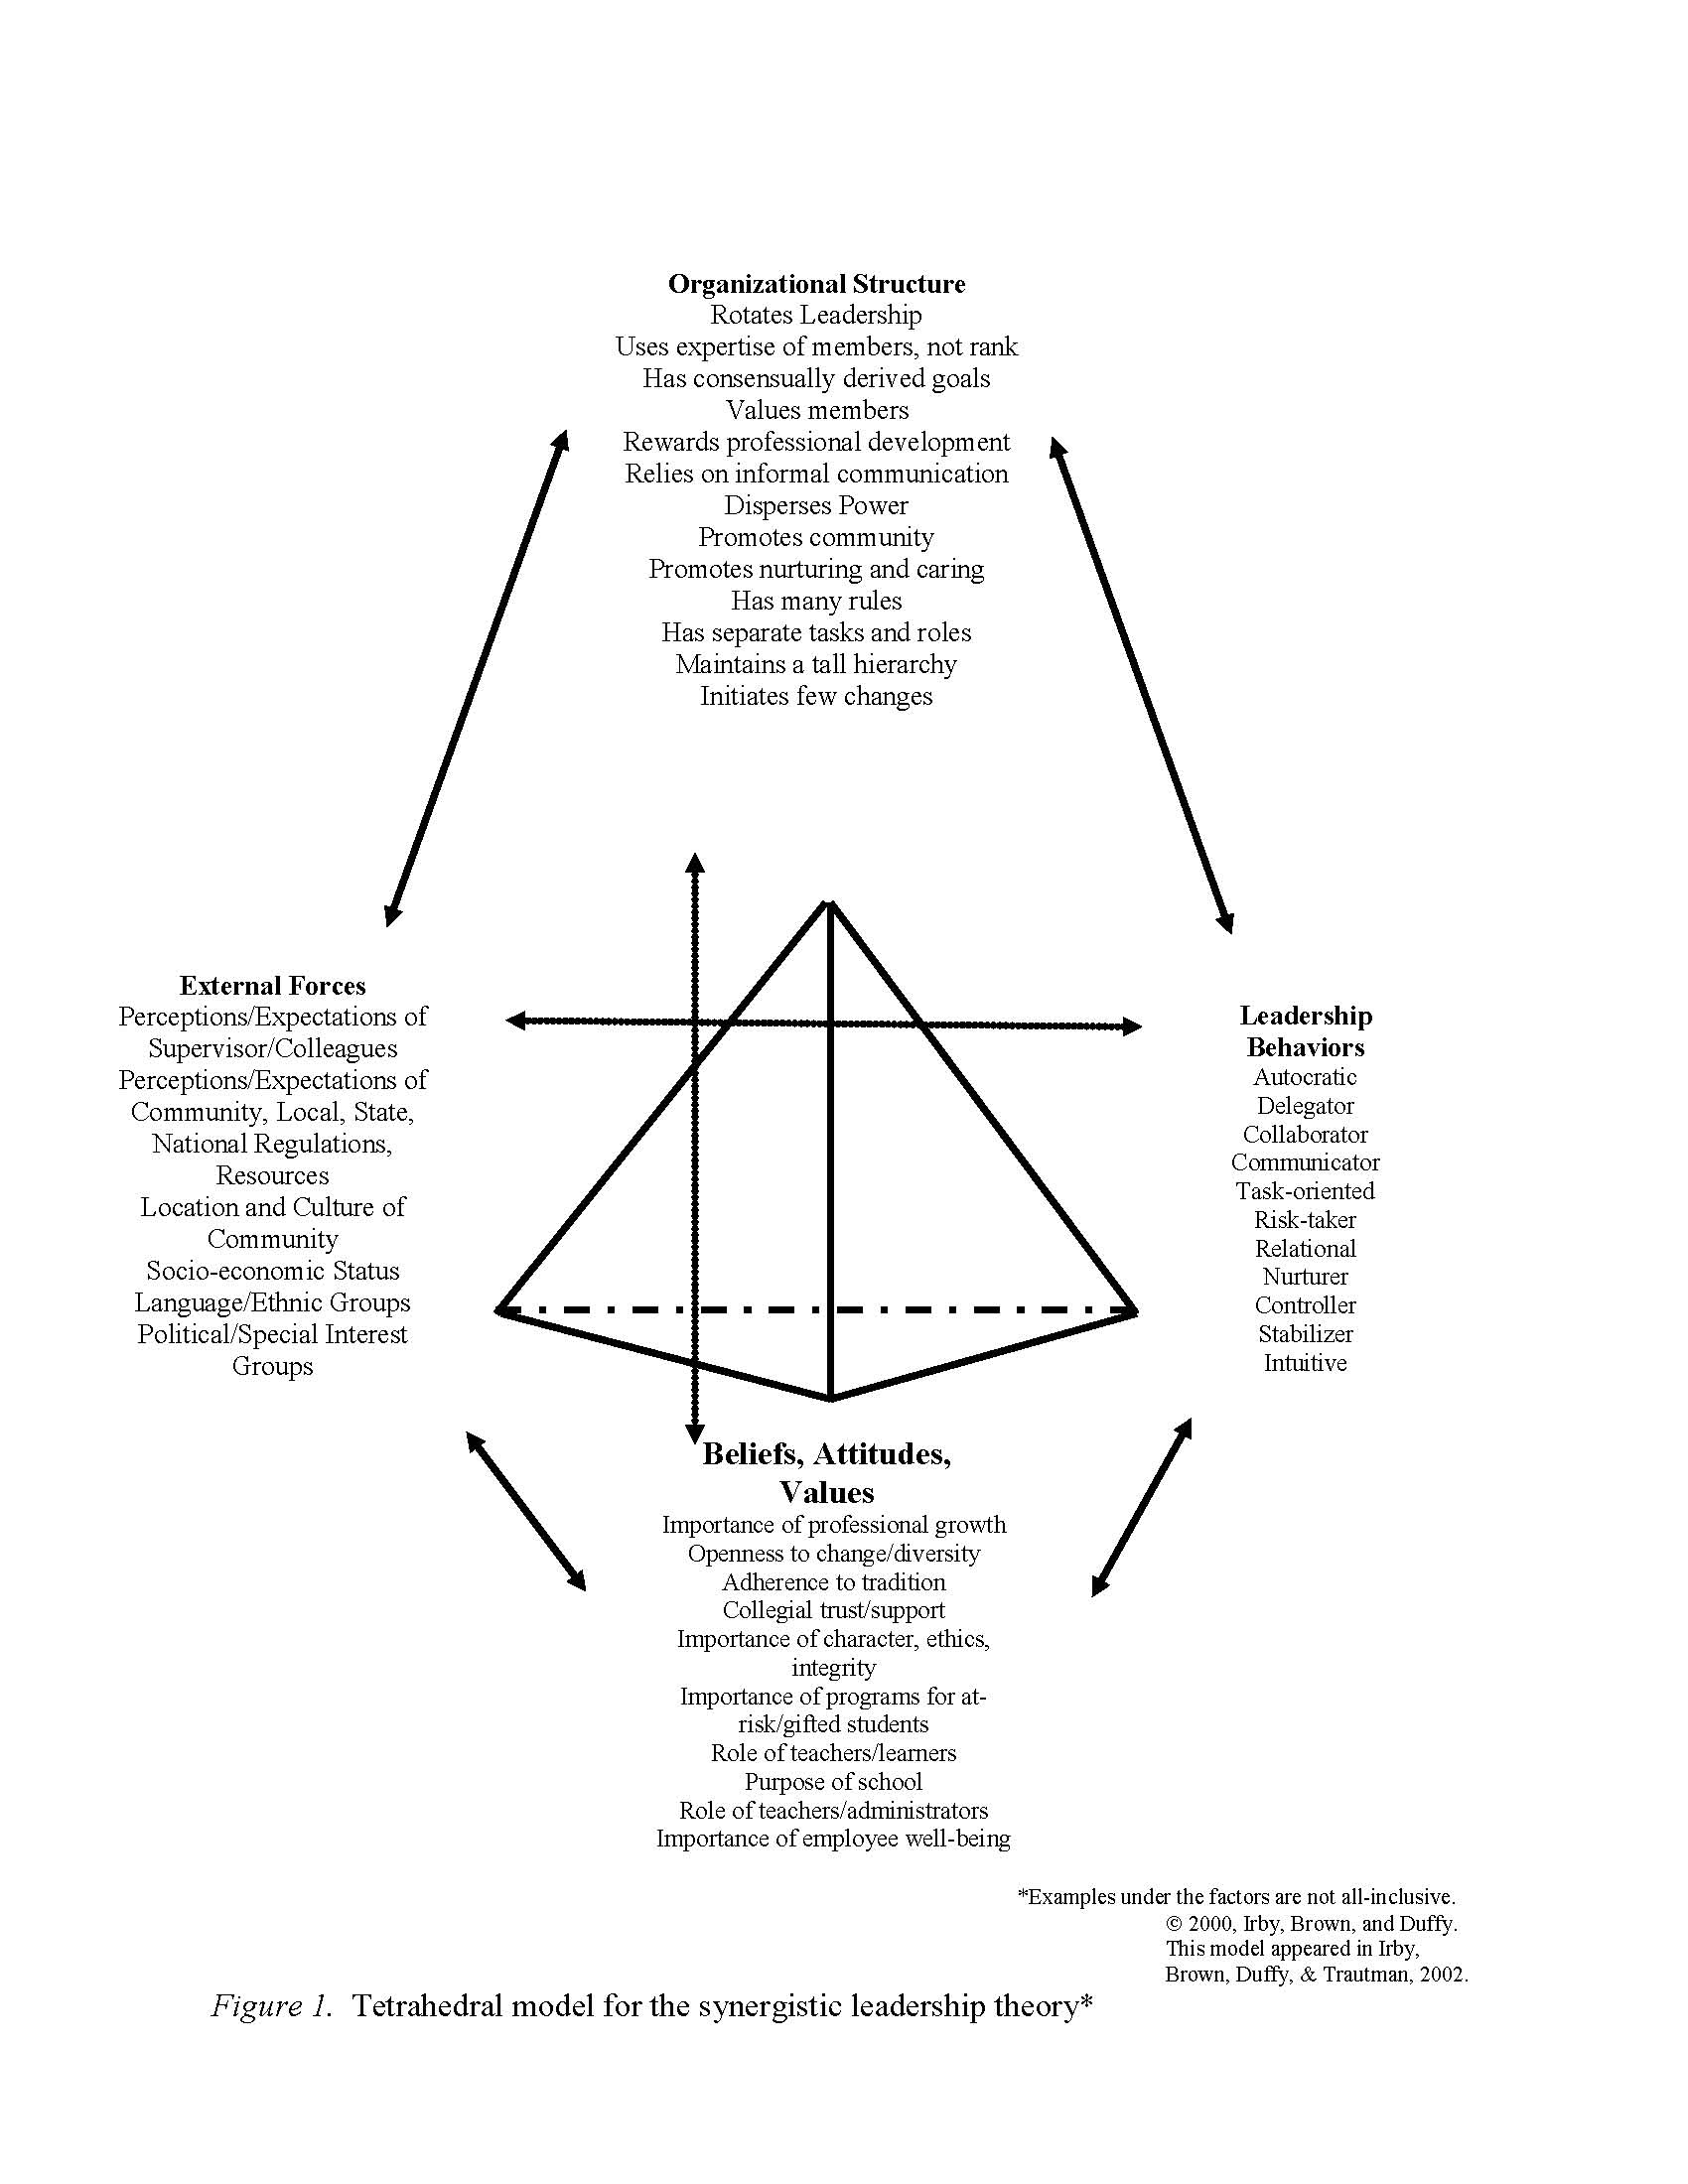 a case study of mexican educational leaders viewed through the the slt tetrahedral model